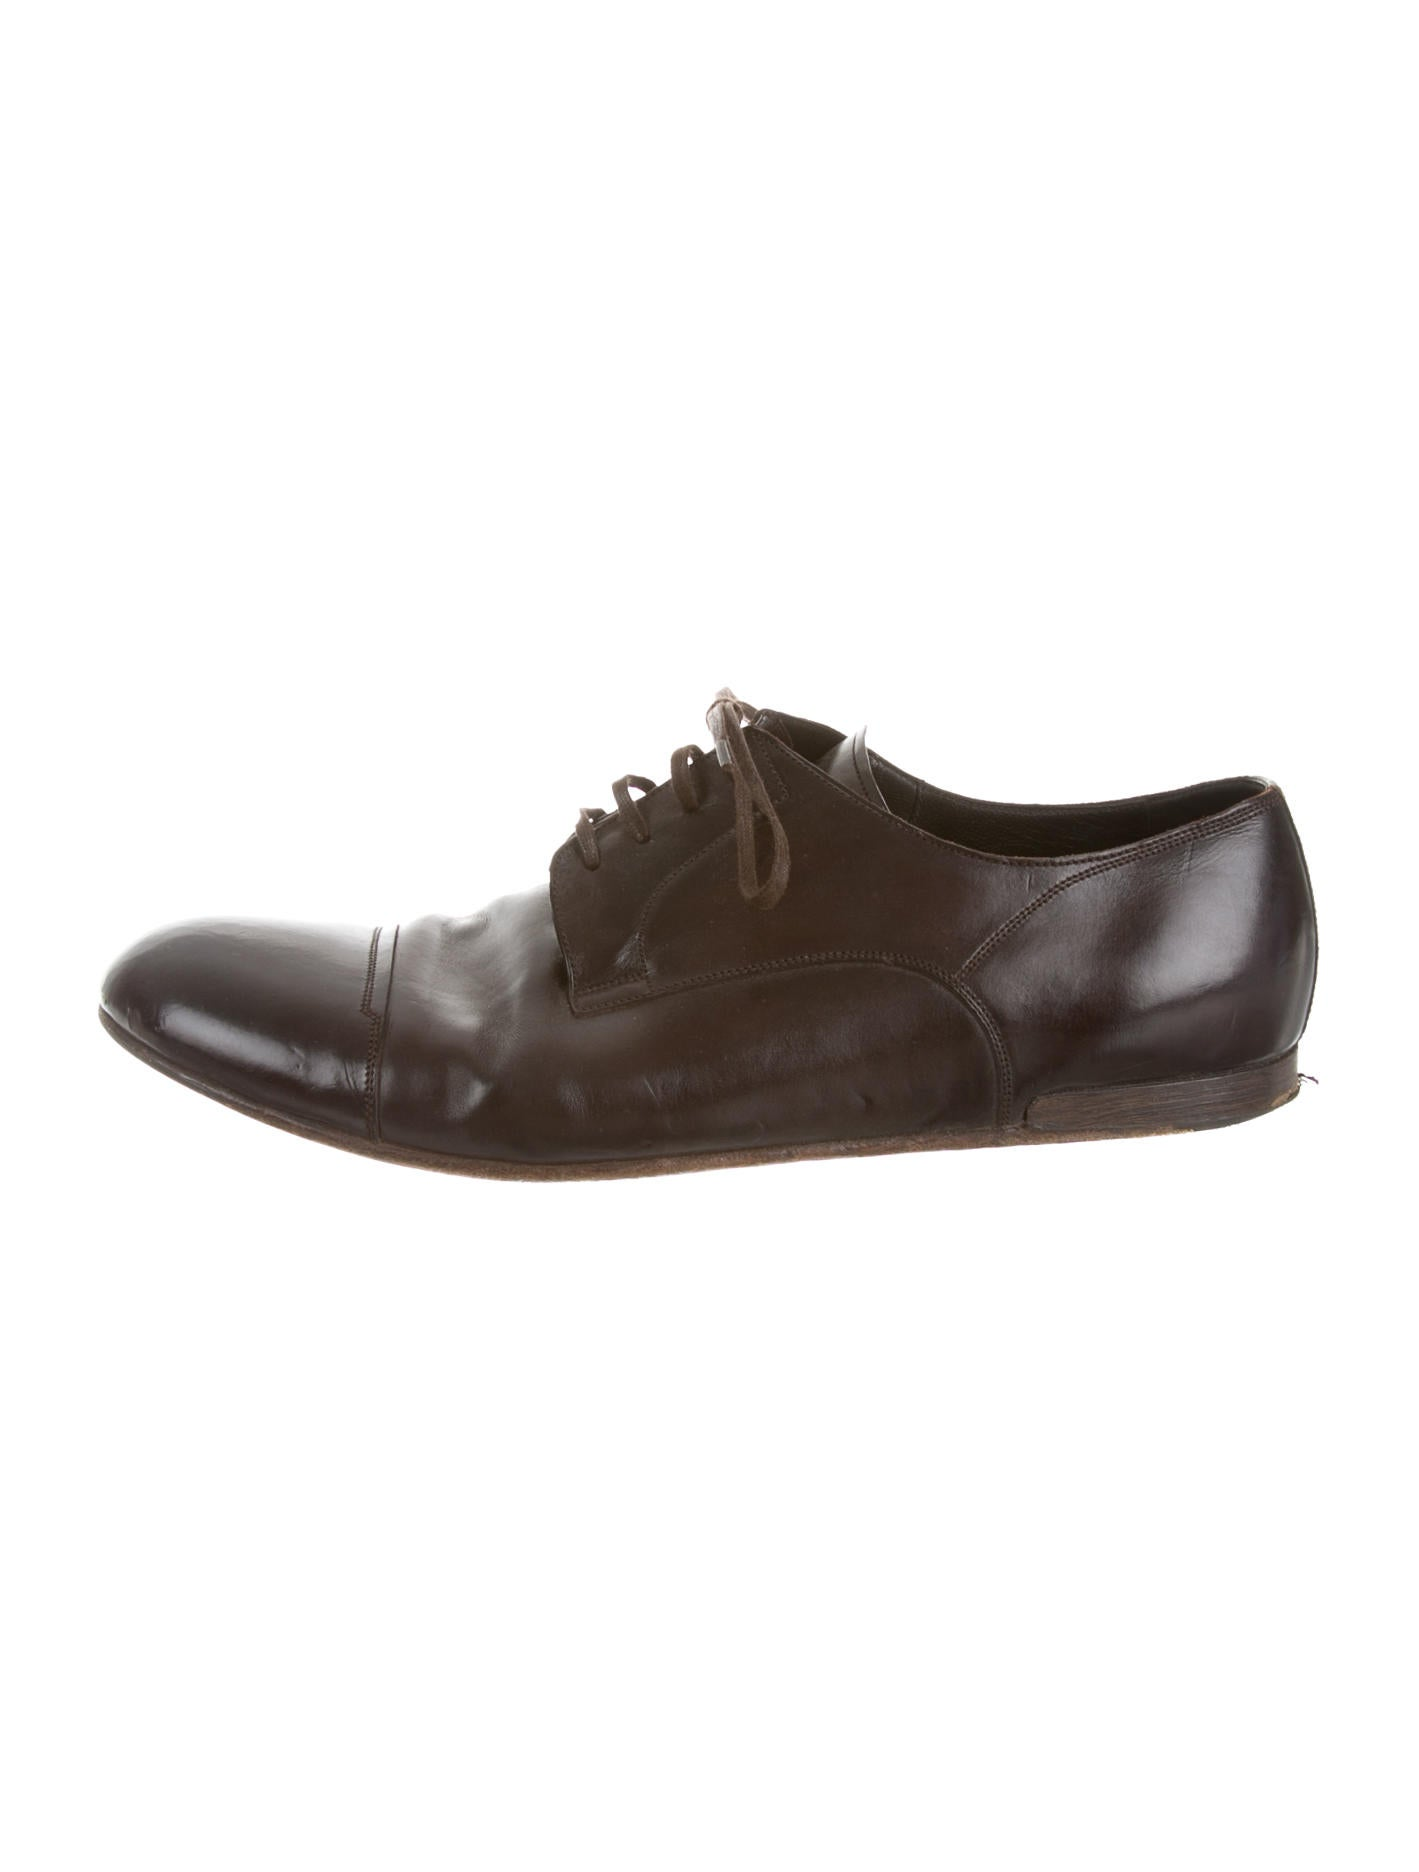 dolce gabbana brogues mens shoes dag38615 the realreal